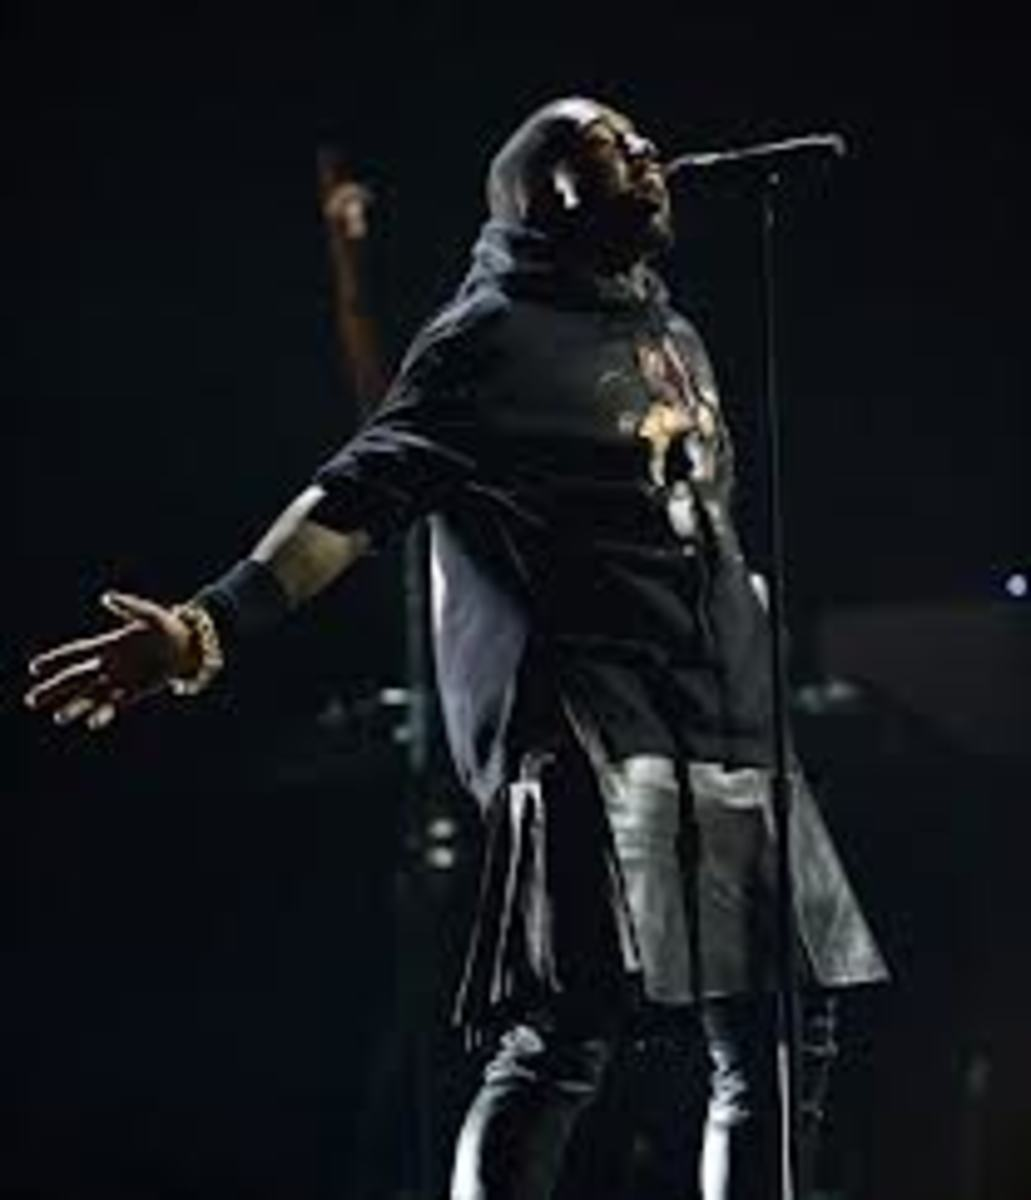 Kanye West Wearing a Skirt - Famous Rap Star